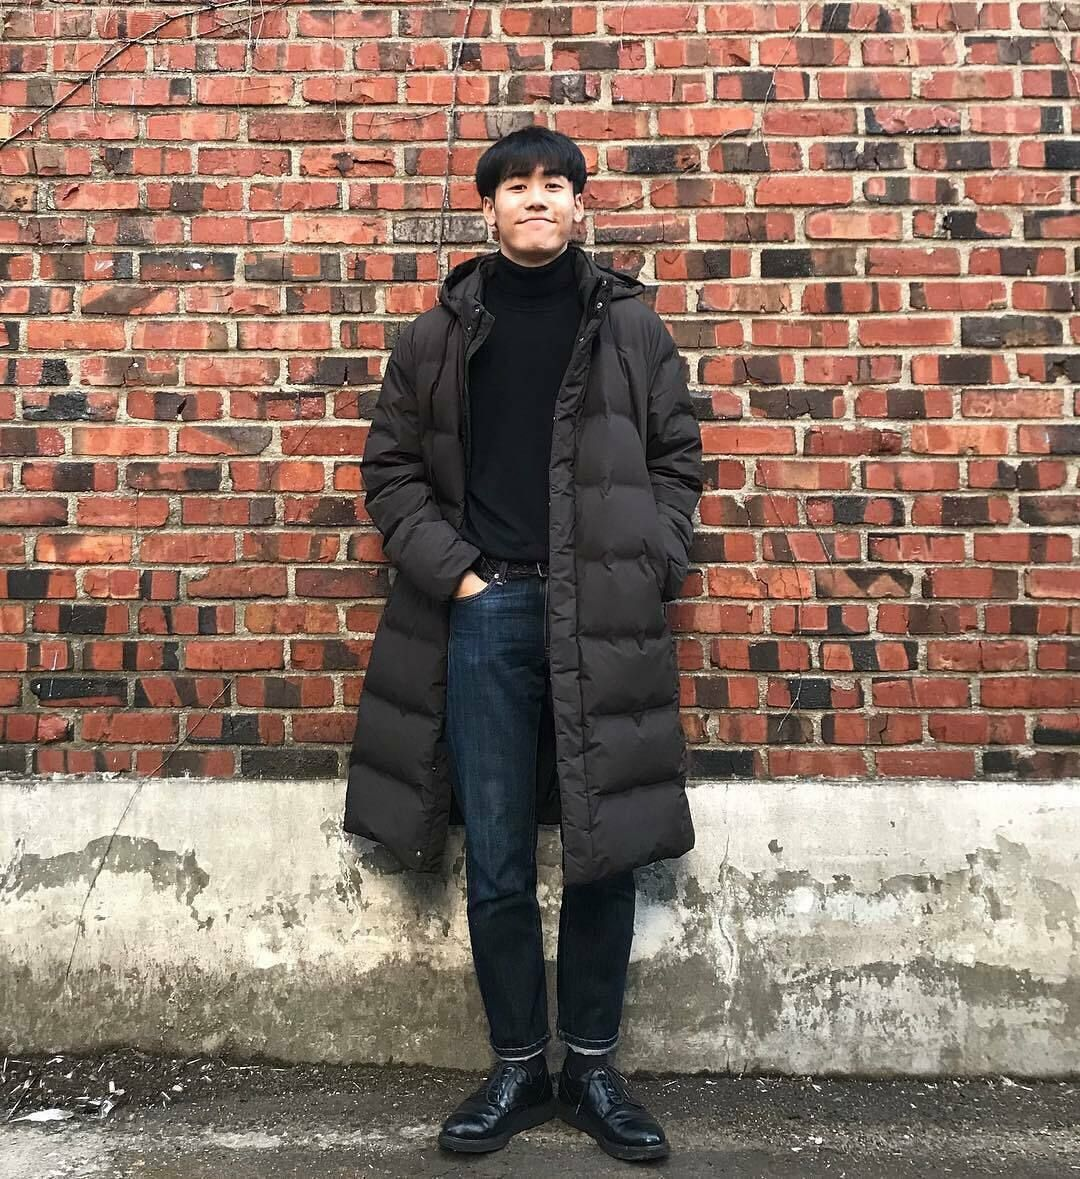 Uniqlo Men Seamless Down Long Coat Water Repellent Hooded Puffer Jacket S M 179 99 Puffer Jacket Outfit Men Winter Outfits Men Long Coat Men [ 1179 x 1080 Pixel ]